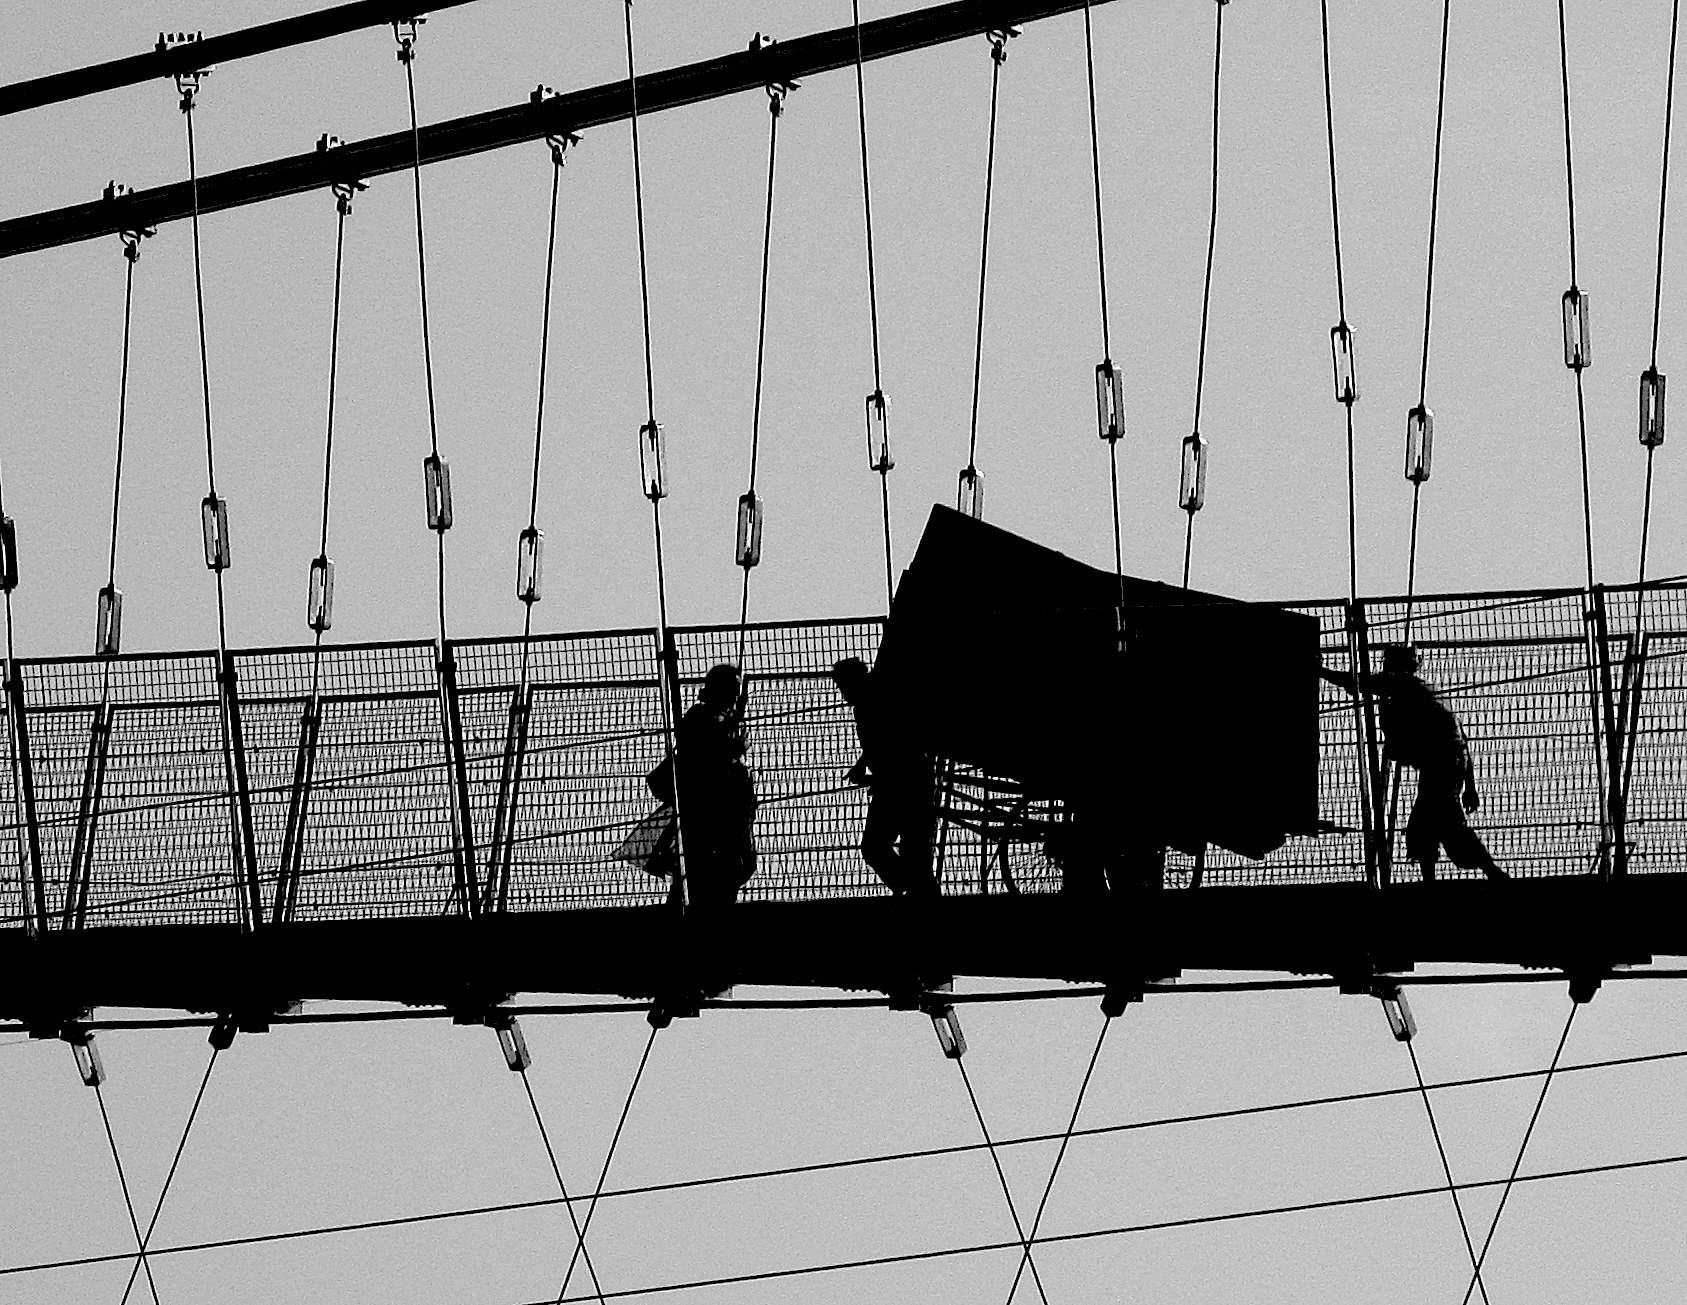 Hauling a handcart to Hell. Small government doesn't protect these faceless silhouettes' labour rights, their health their children's education, the sacred Ganges running polluted beneath the bridge…